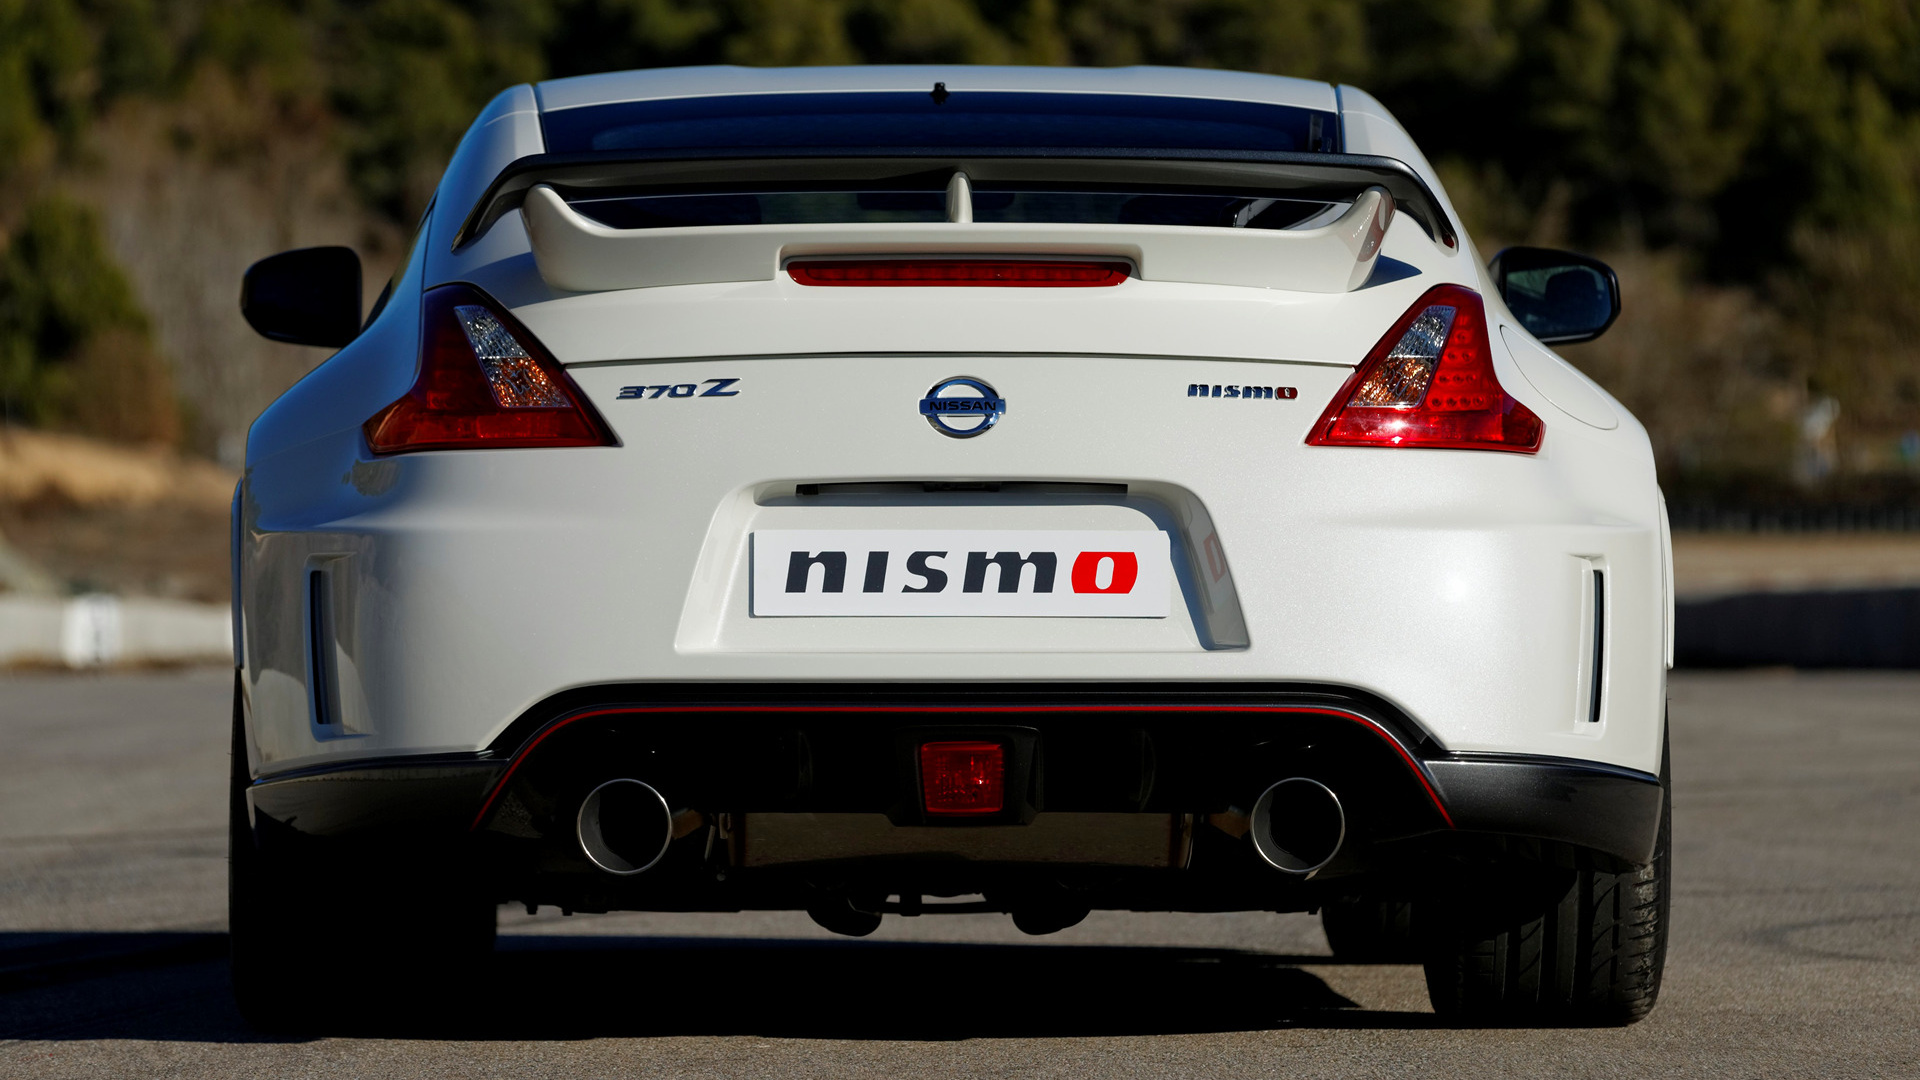 Nissan 370z nismo 2013 uk wallpapers and hd images car pixel hd 169 vanachro Choice Image